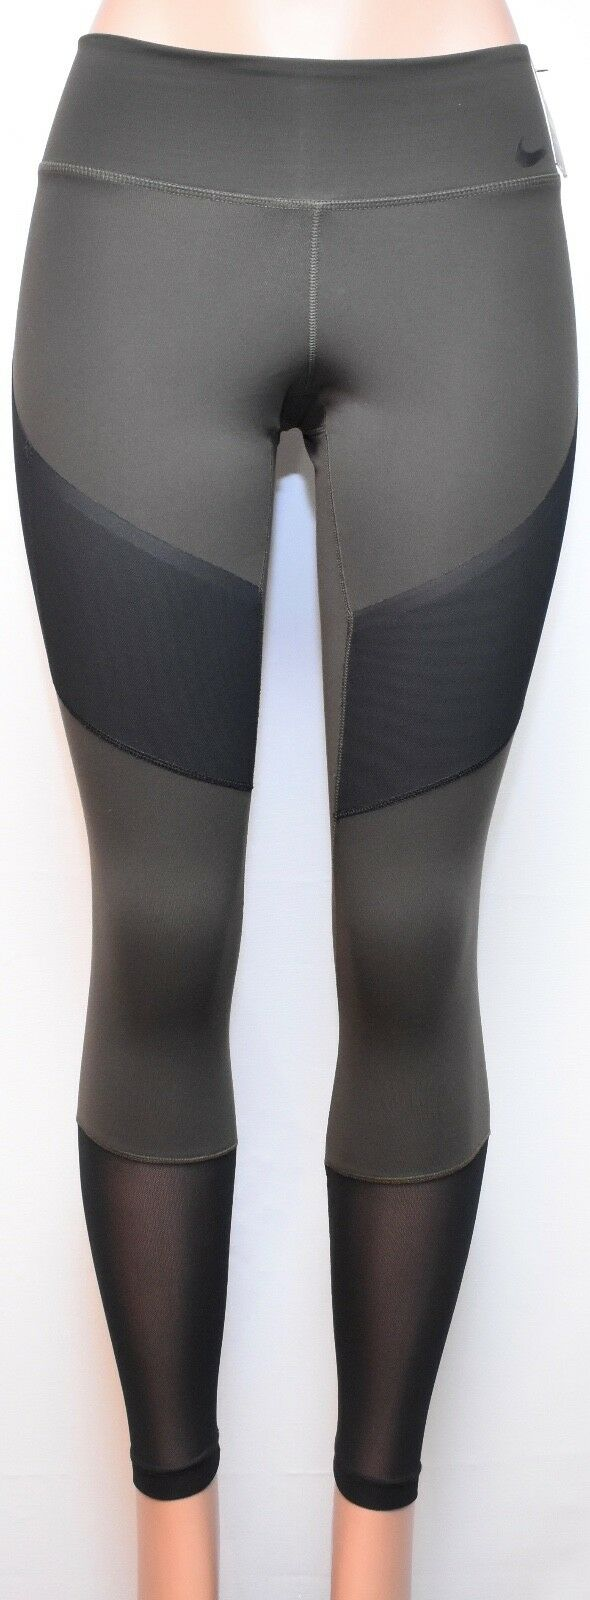 NIKE Legendary Mid Rise Tight-Fit Active Leggings (833718-355) Small Size